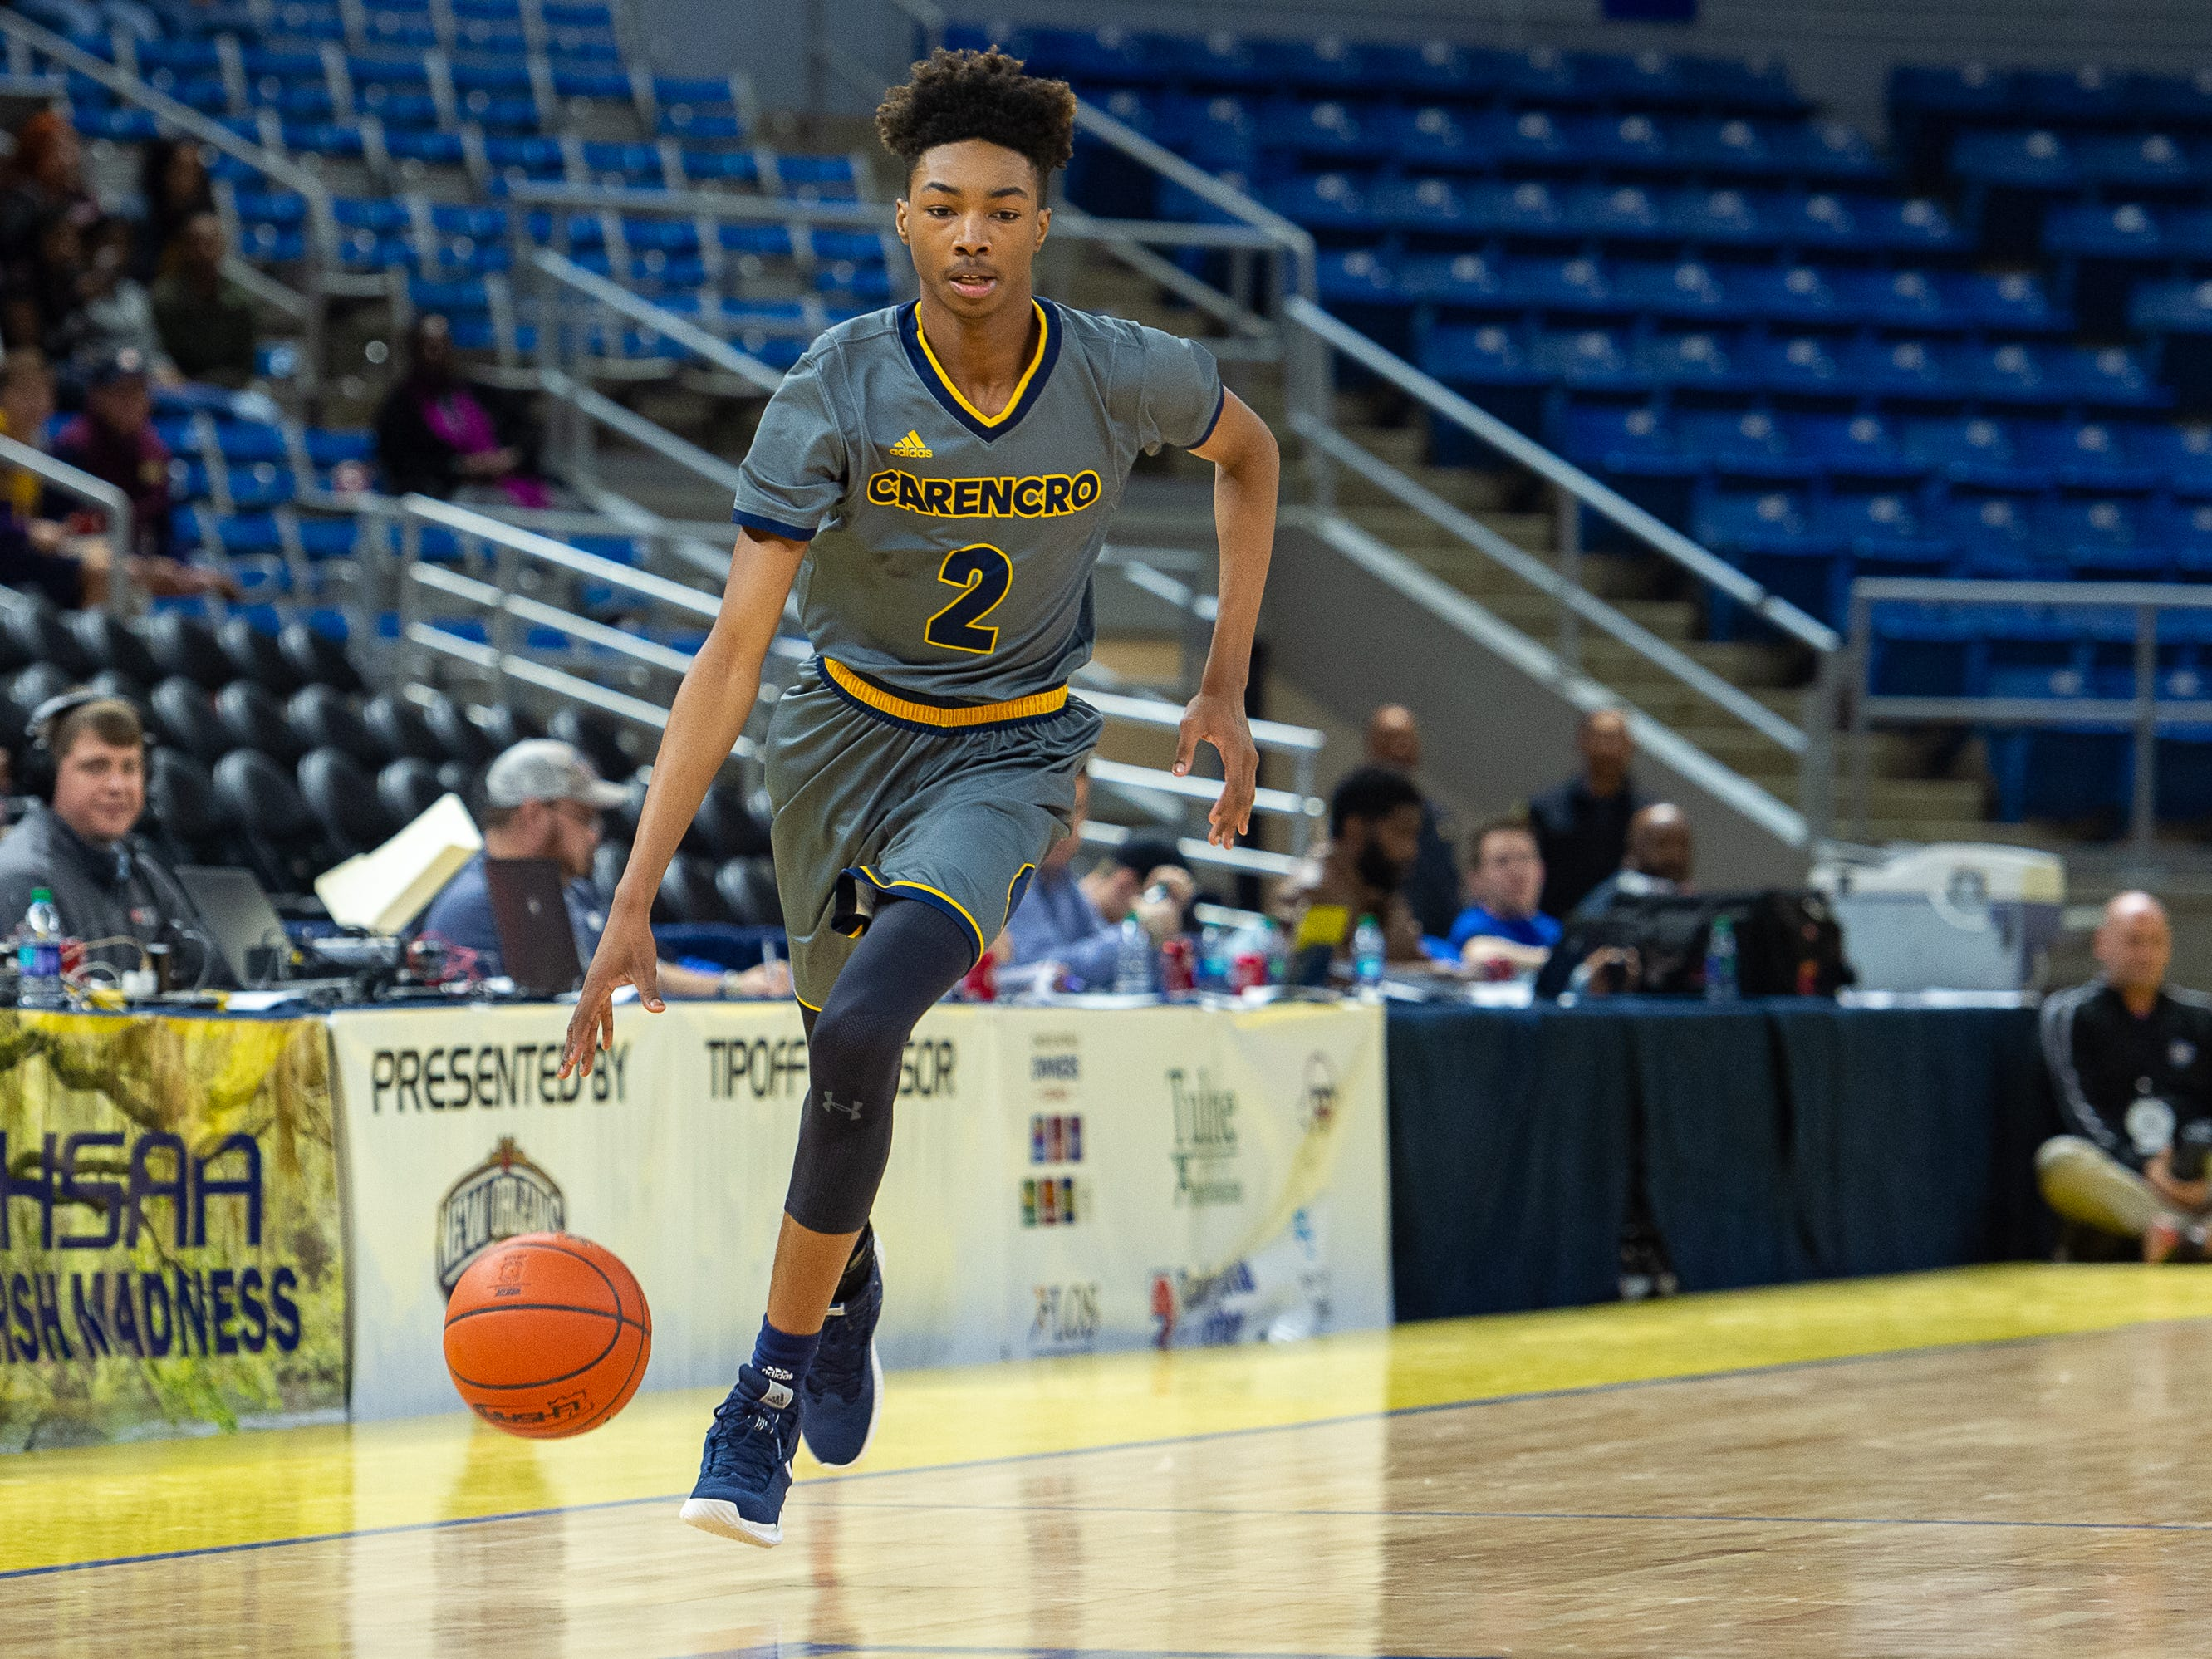 Joseph Charles drives the ball as Carencro falls to Bossier in the Semi Final round of the LHSAA State Championships. Tuesday, March 5, 2019.